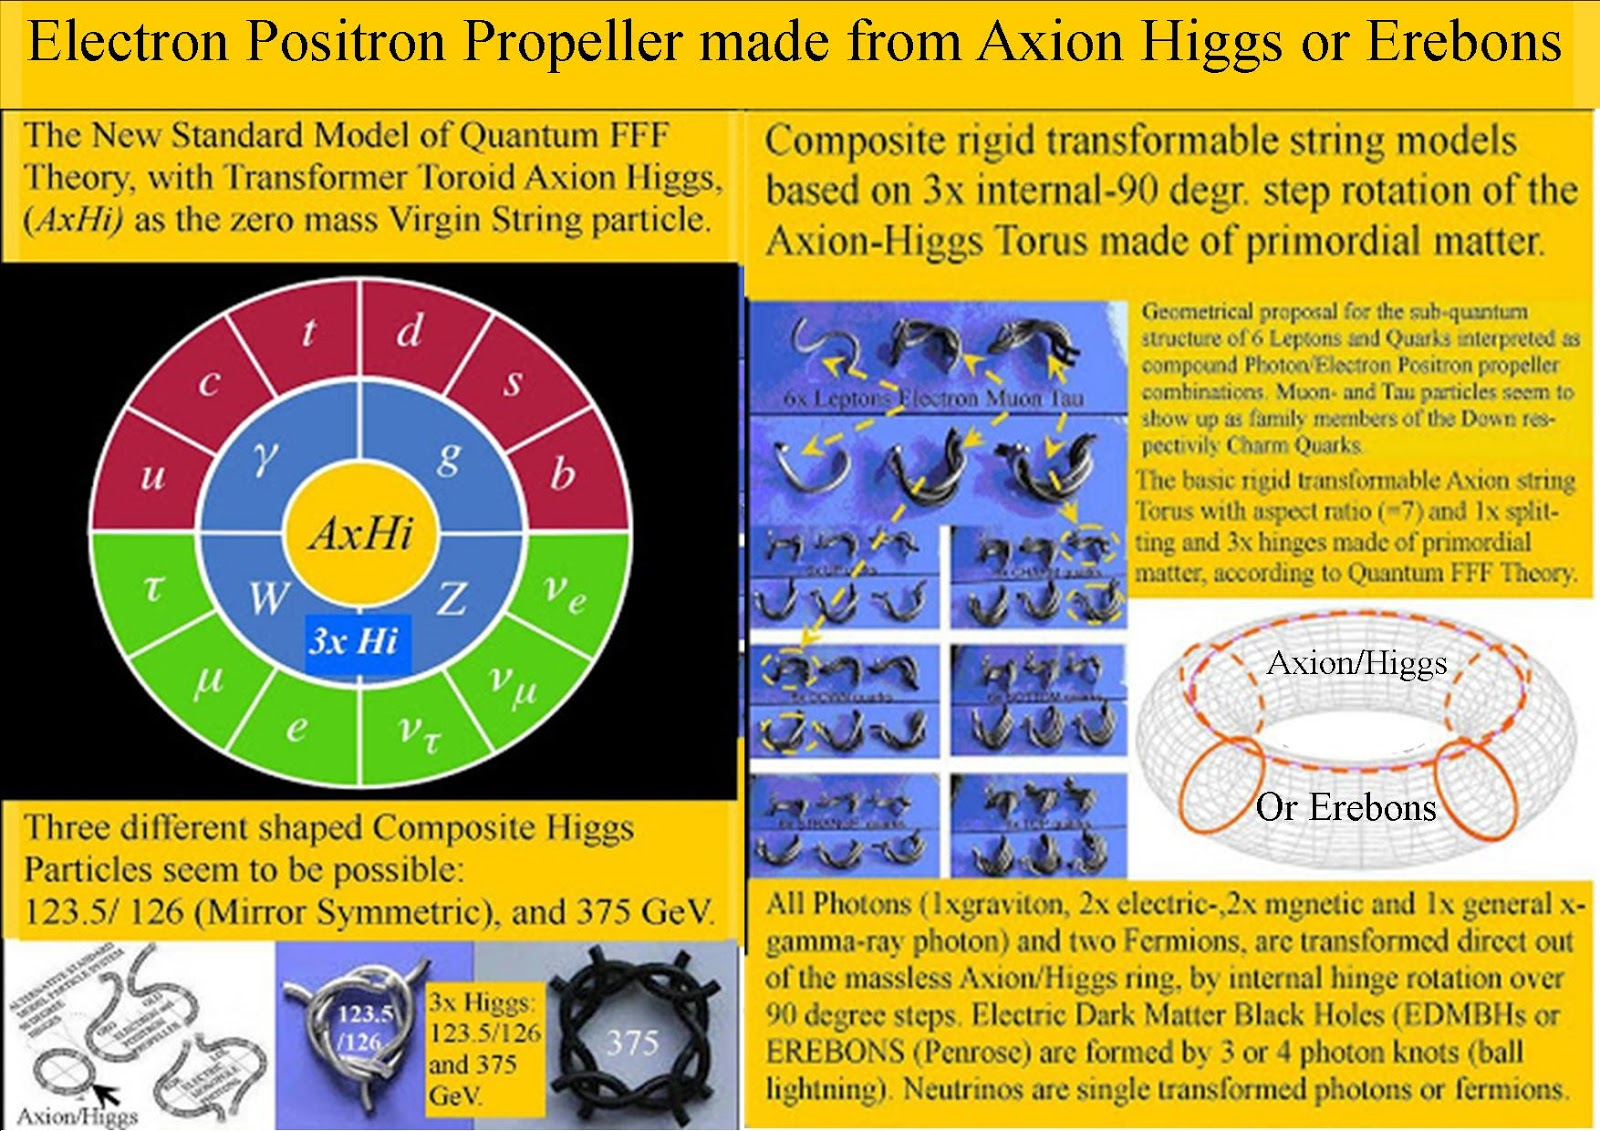 medium resolution of  black hole horizon only photon gluons and axion higgs erebons see also http vixra org pdf 1103 0002v4 pdf and http vixra org author leo vuyk